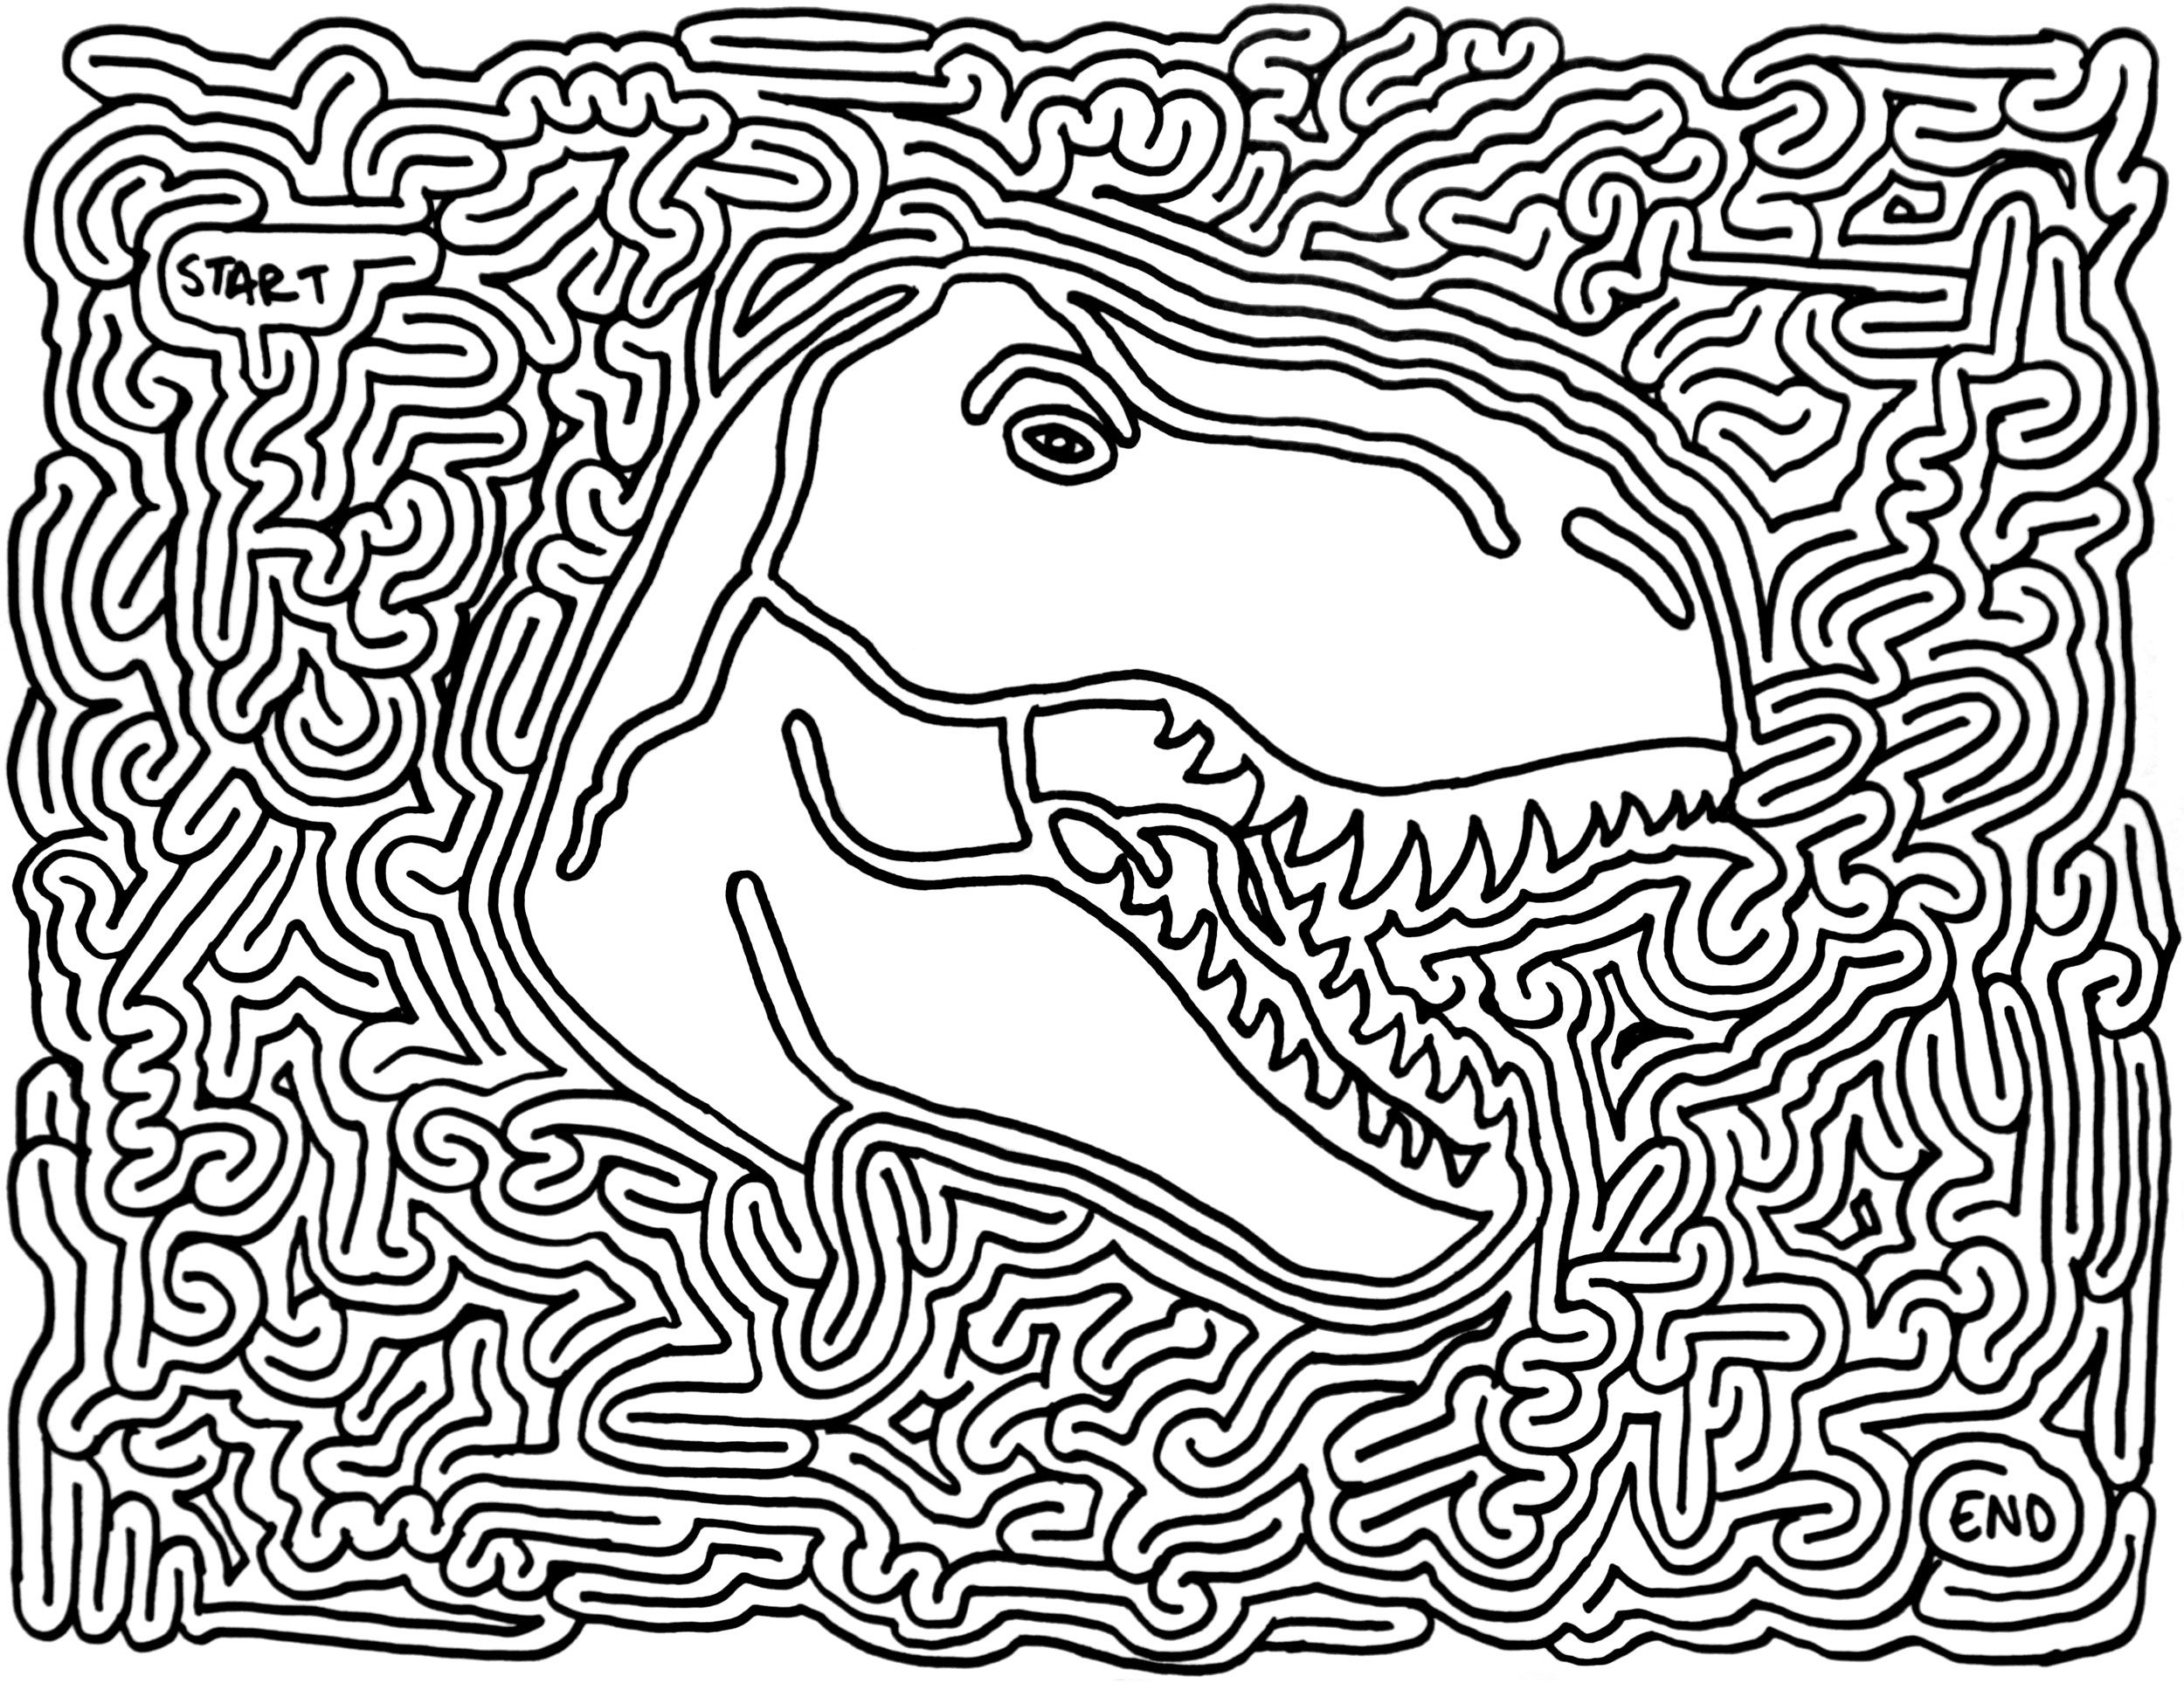 Printable Mazes - Best Coloring Pages For Kids - Printable Puzzle Mazes